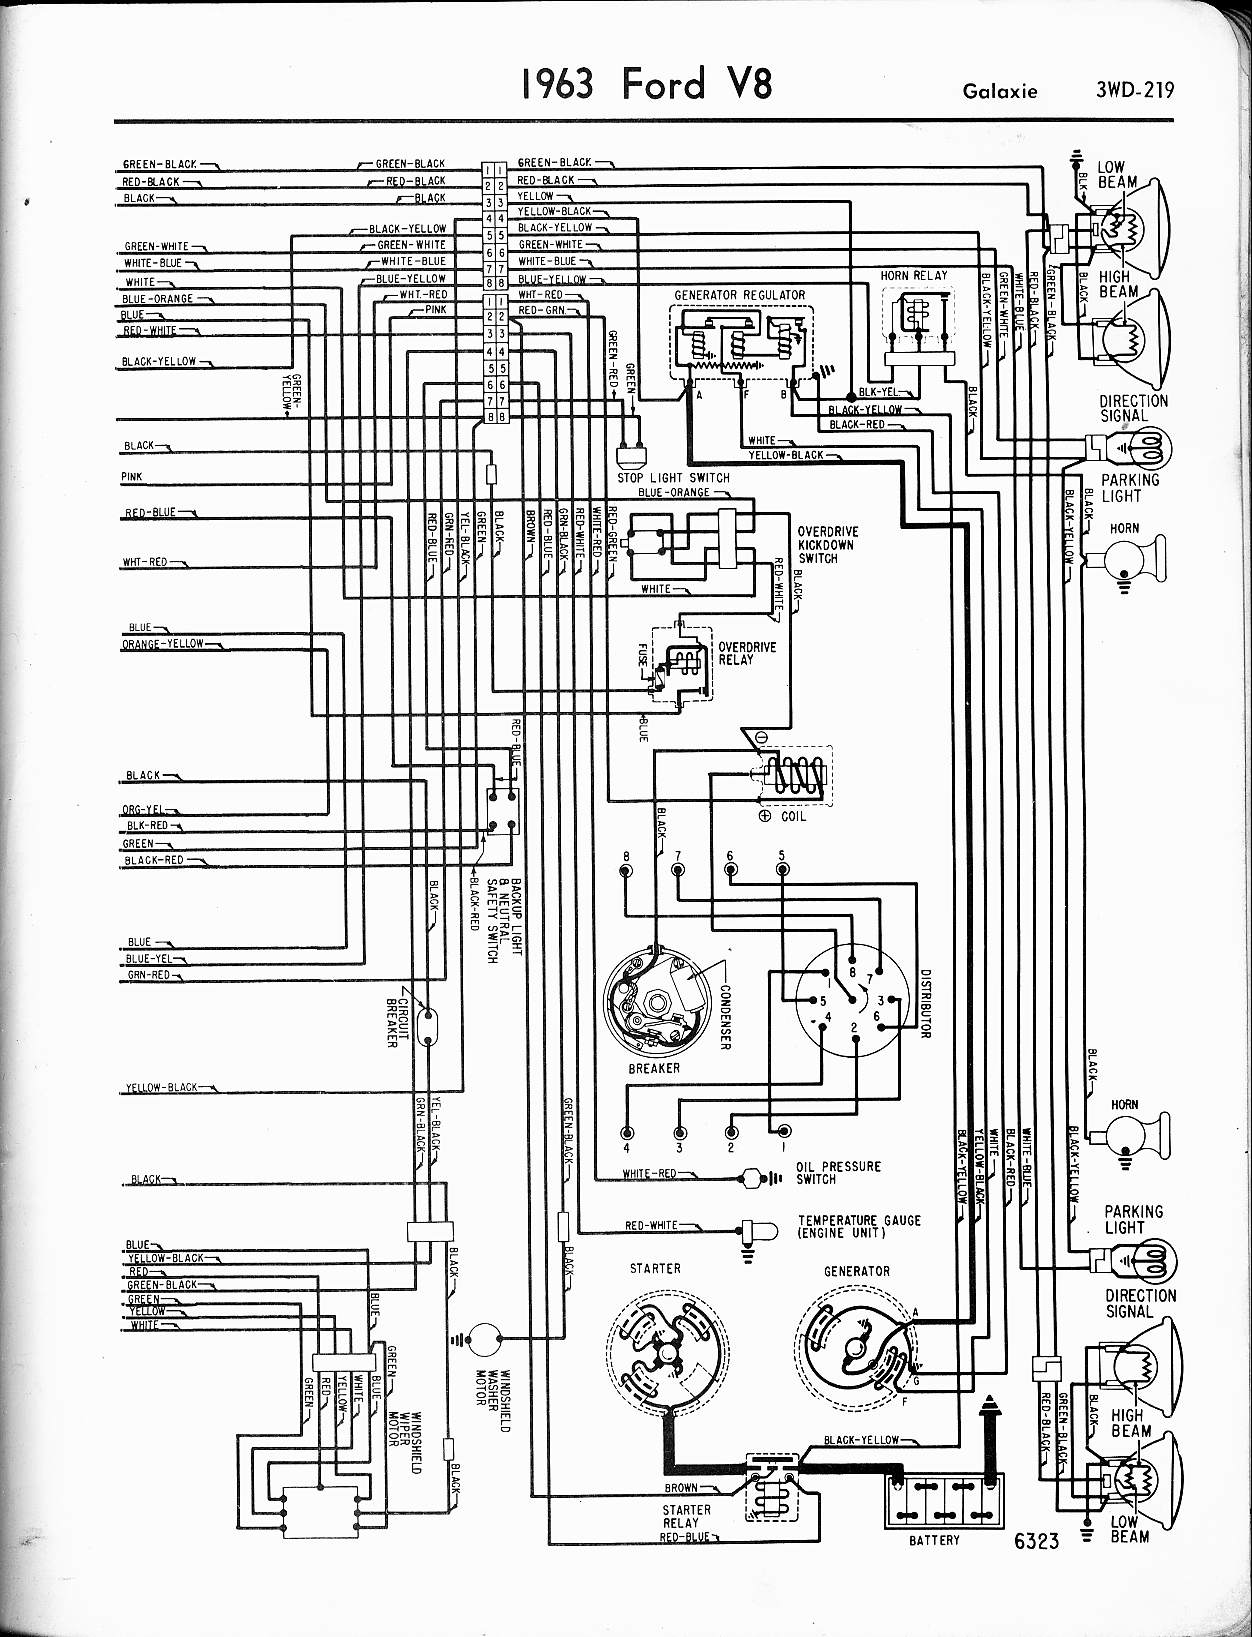 1963 Ford Wiring Diagram | cap-speed Wiring Diagram union -  cap-speed.buildingblocks2016.eu | Wiring Schematic For 1963 Ford F100 |  | buildingblocks2016.eu